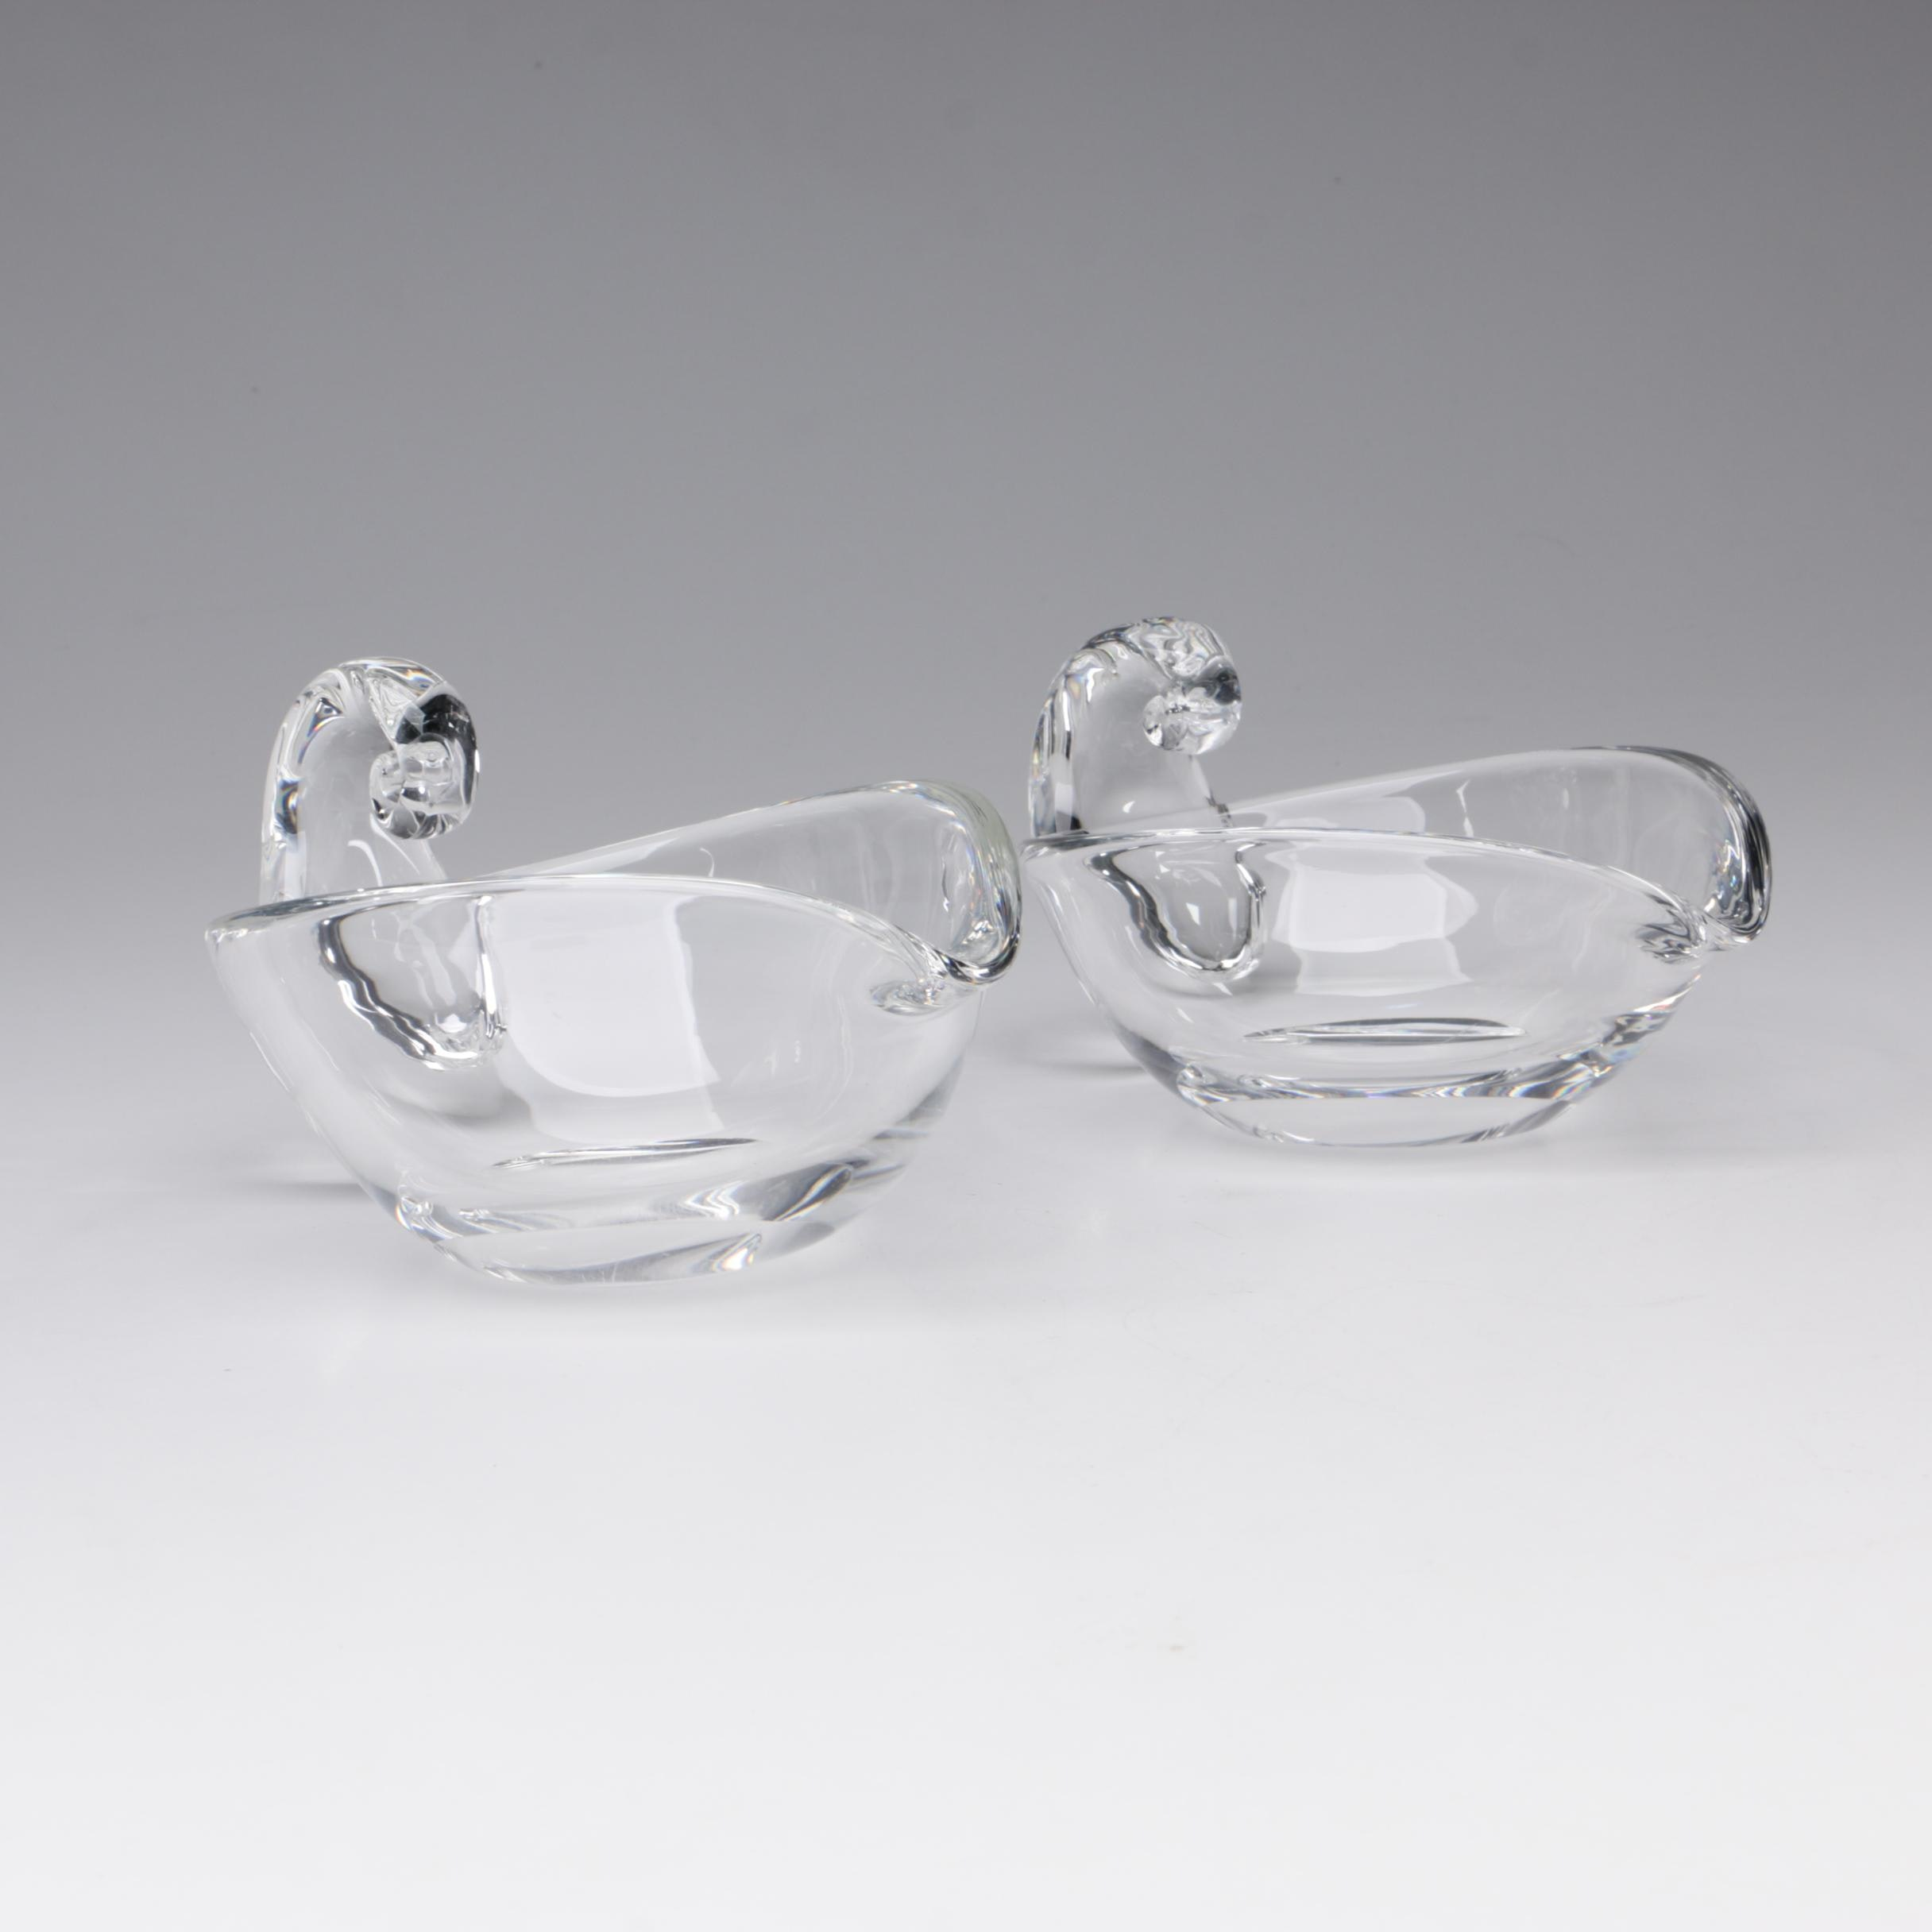 Steuben Art Glass Cream Pitchers Designed by Irene Benton, 1947